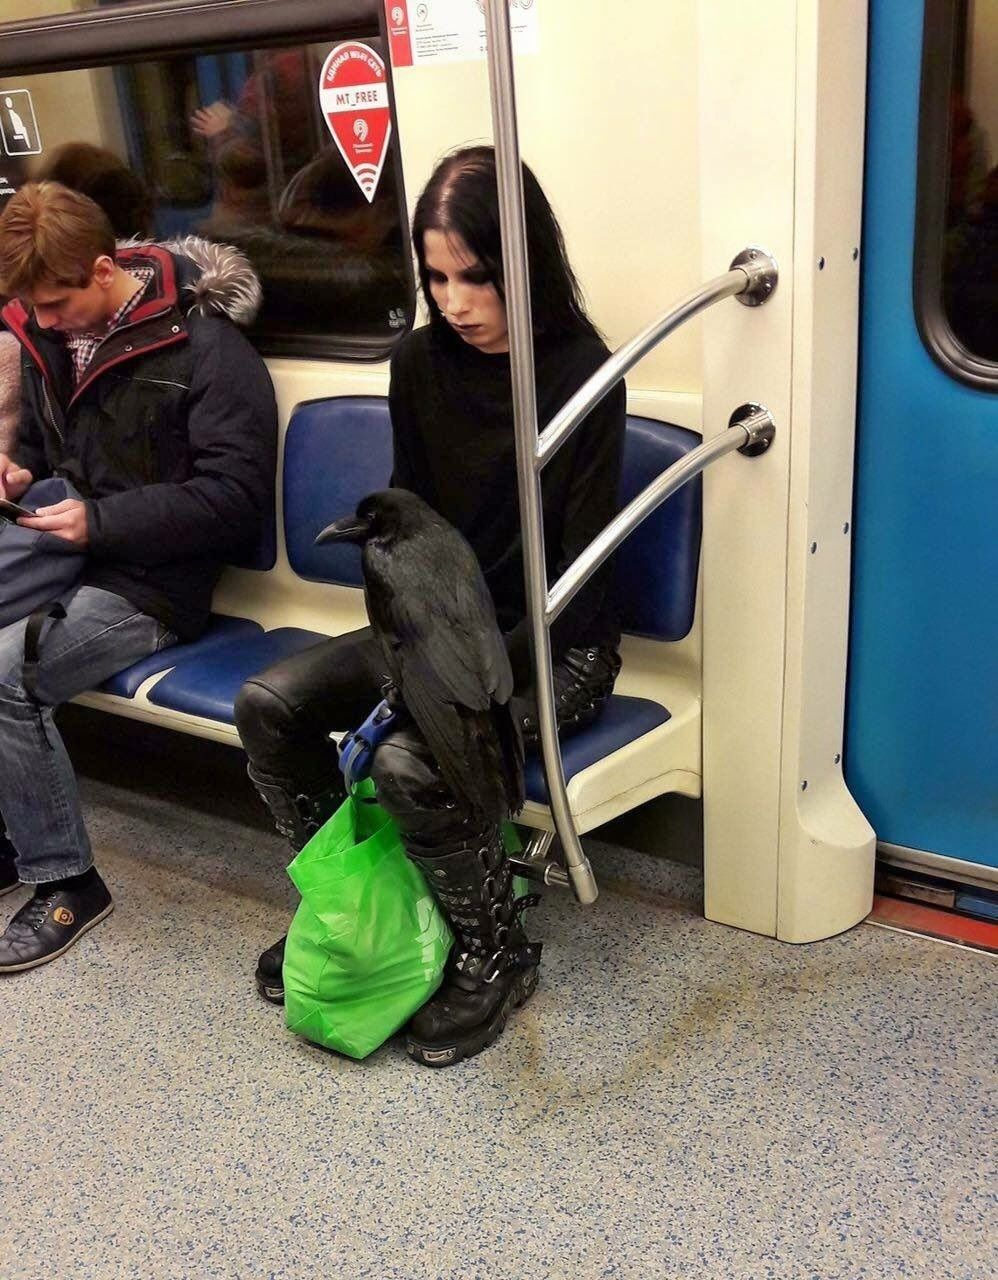 A girl and her raven on the running subway ....